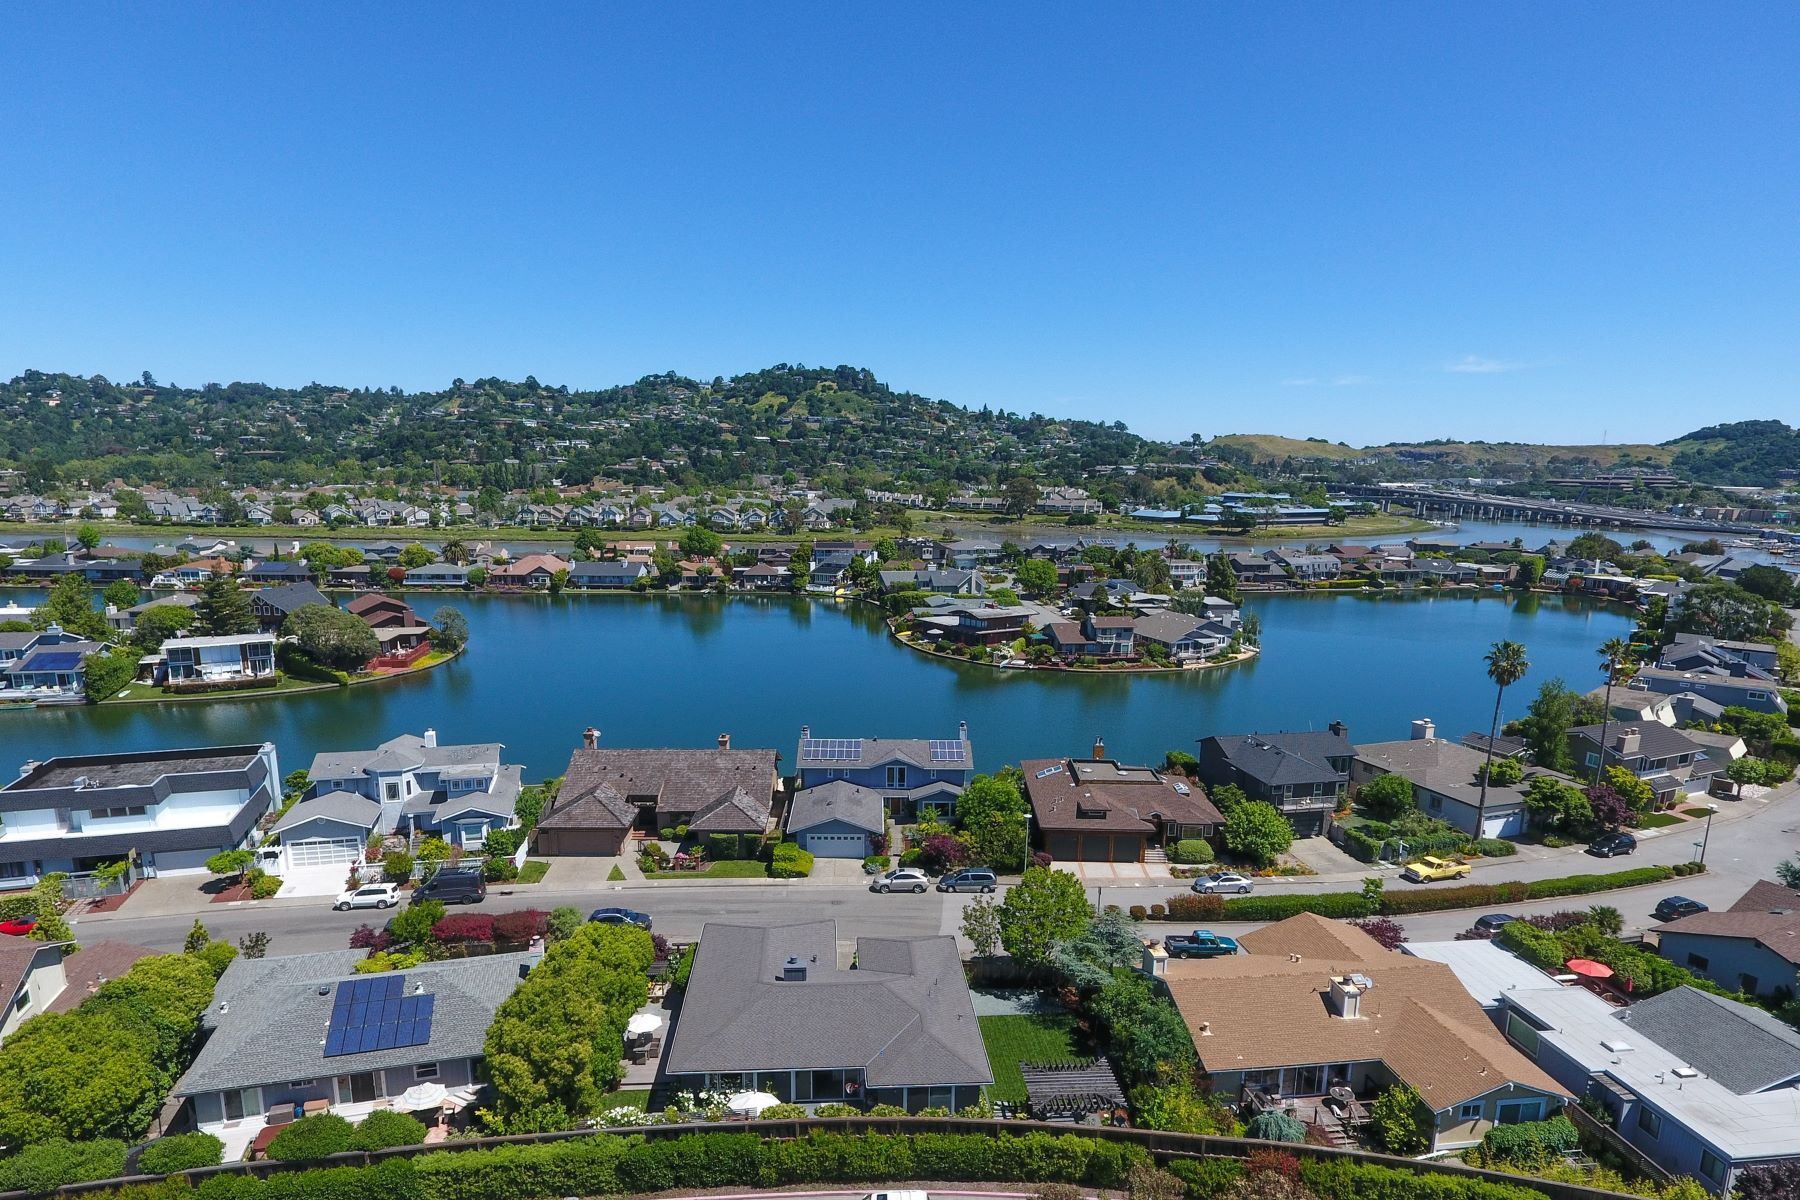 独户住宅 为 销售 在 Lovely View Home in Larkspur Marina 84 Via La Brisa Larkspur, 加利福尼亚州 94939 美国